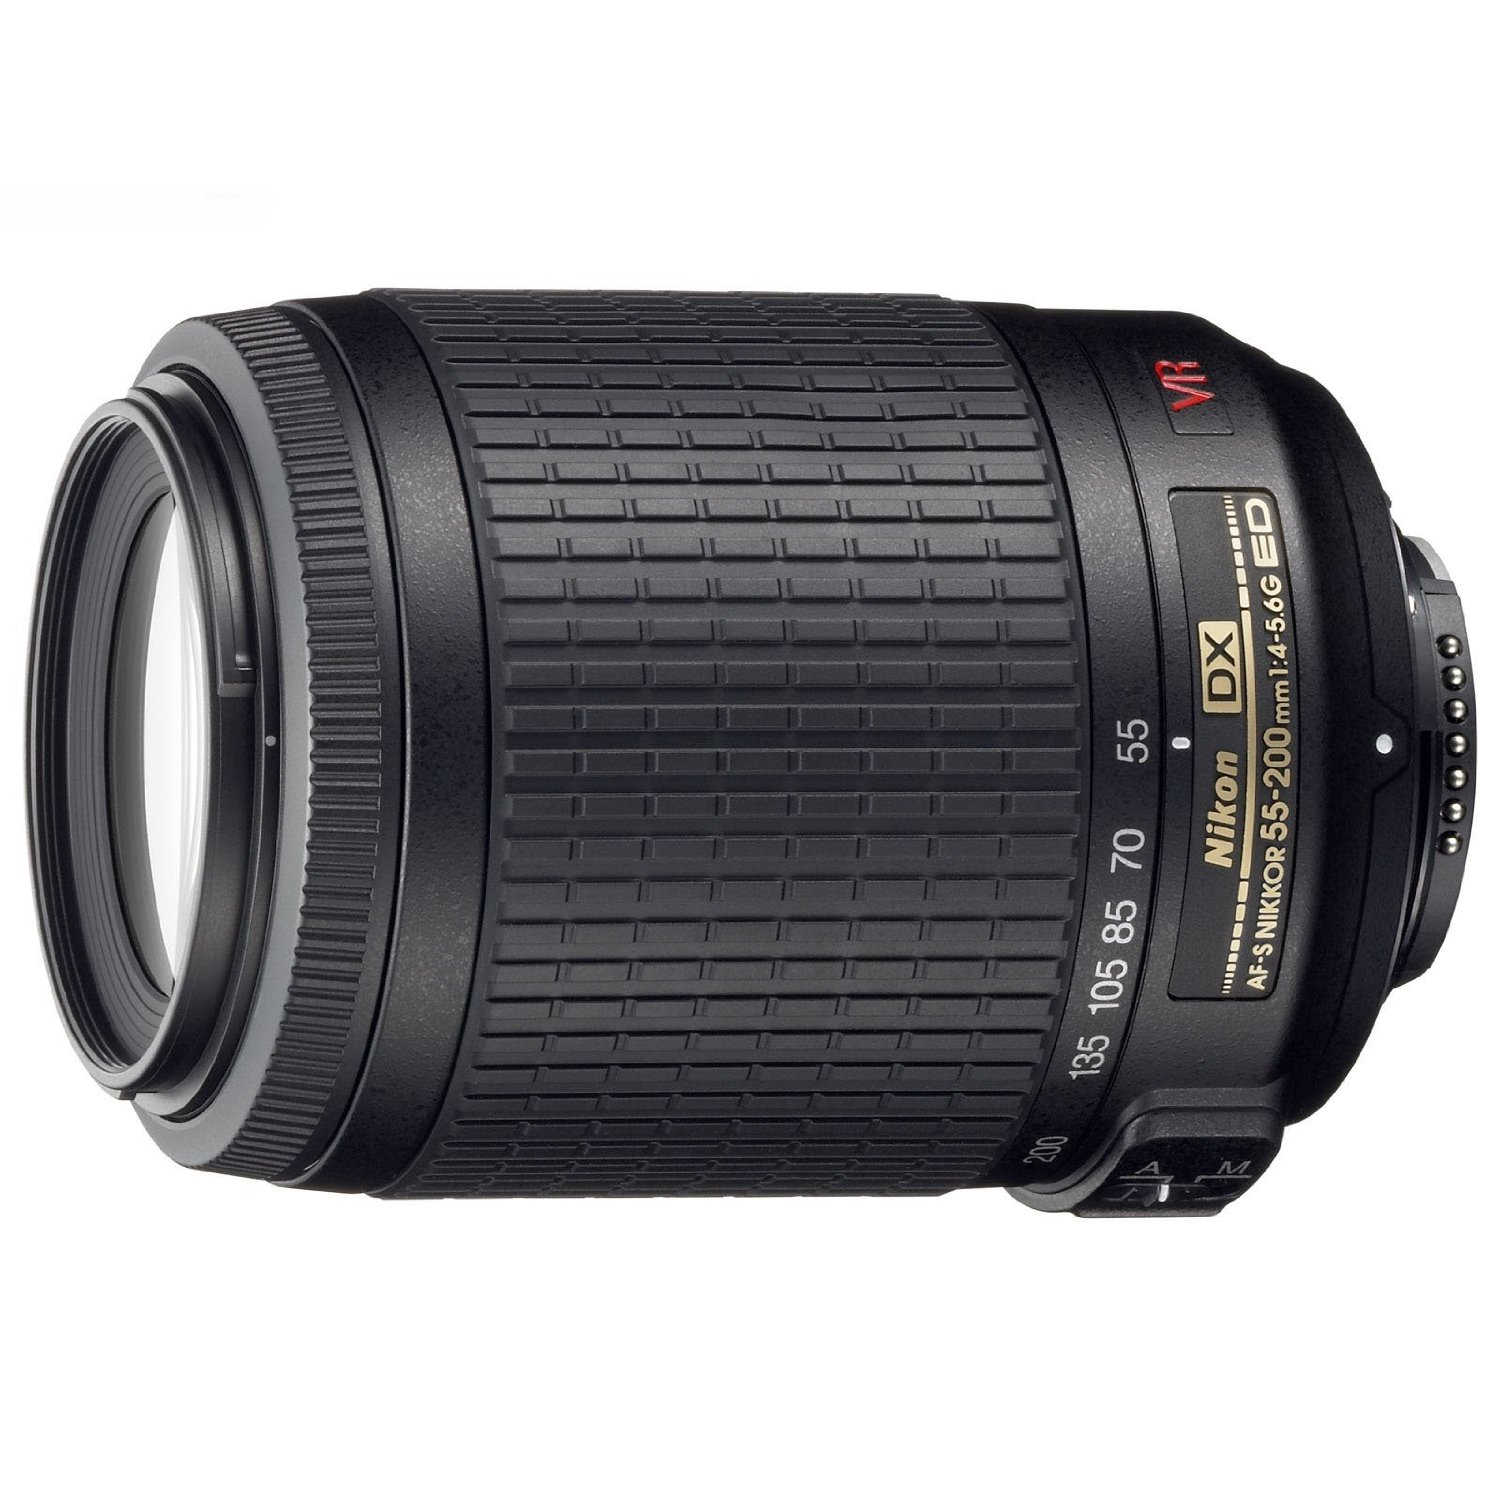 Best Inexpensive DX Lens for your Nikon – Nikon 55-200mm VR AF-S f/4-5.6G ED